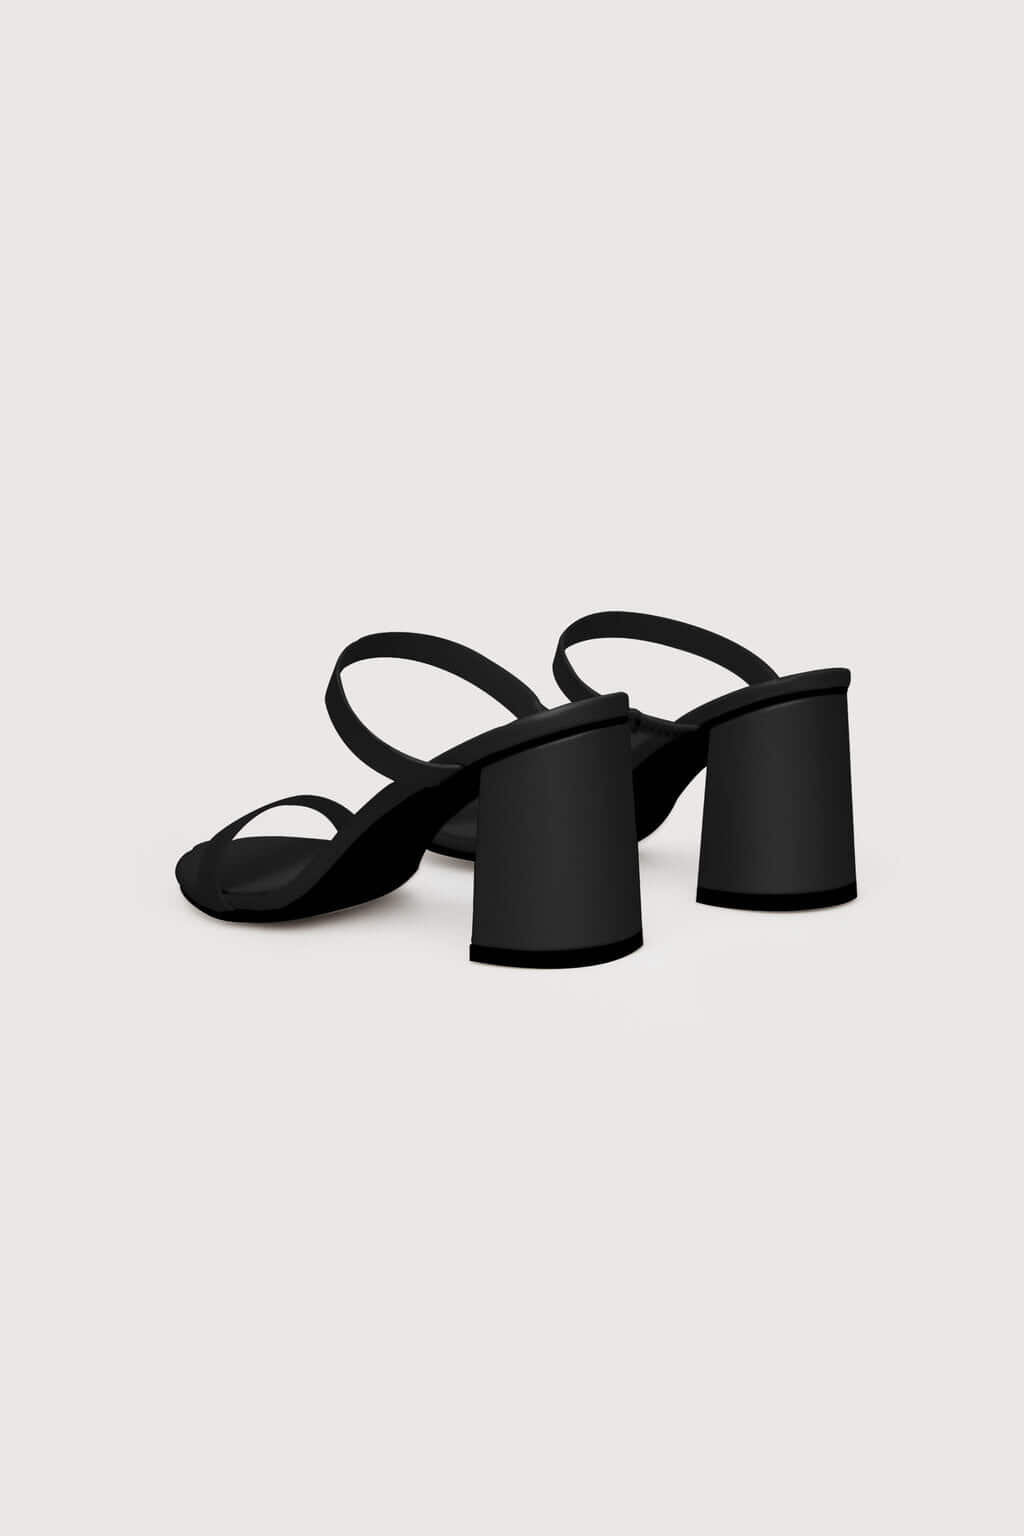 Heeled Sandal 1992 Black 7